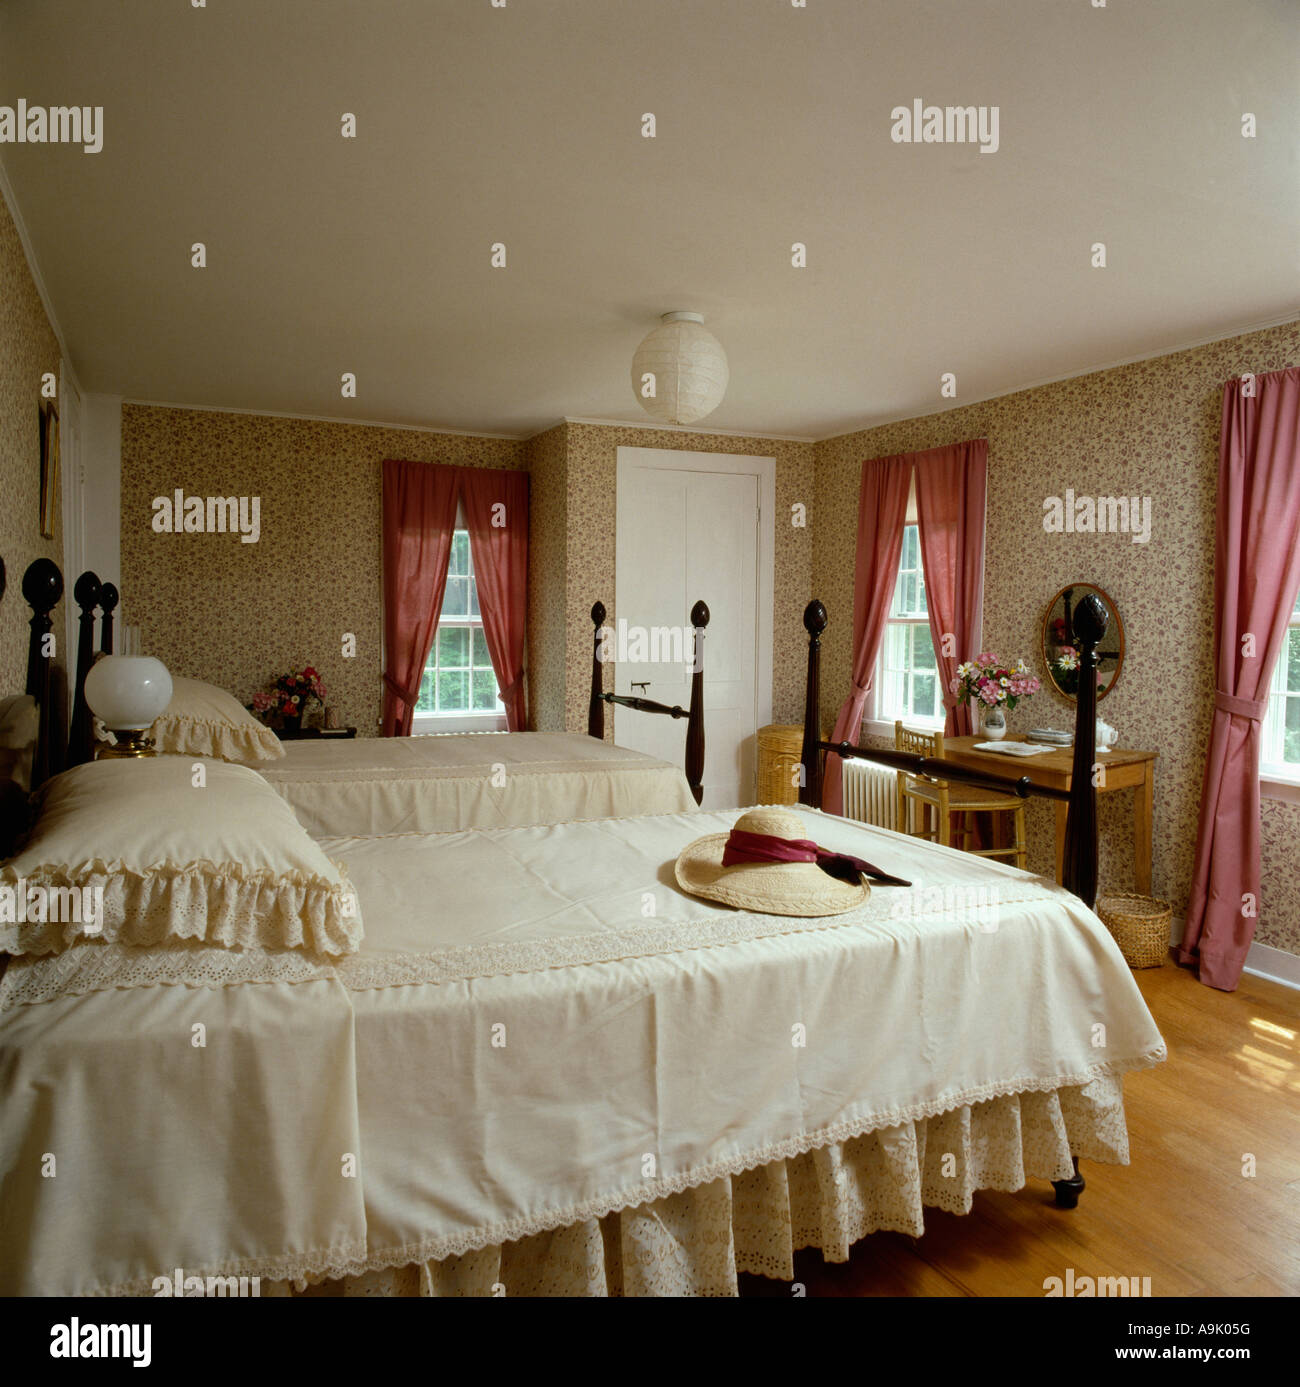 Cream Bedlinen On Twin Beds In Country Bedroom With Pink Curtains Stock Photo Alamy